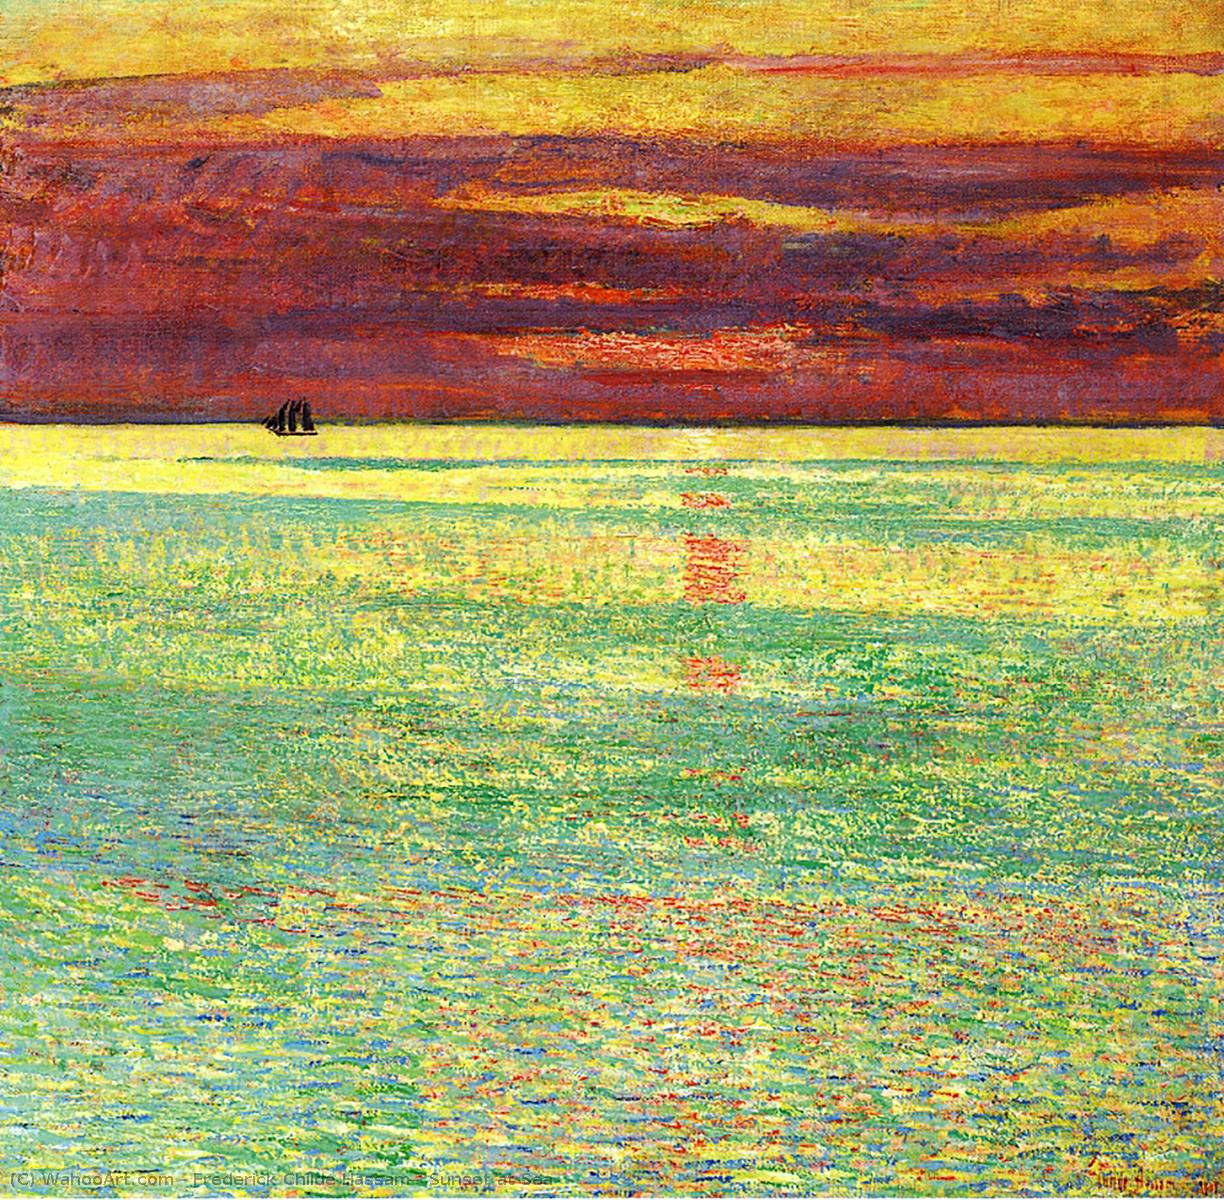 Achat Reproductions De Peintures | coucher du soleil à mer de Frederick Childe Hassam | Most-Famous-Paintings.com